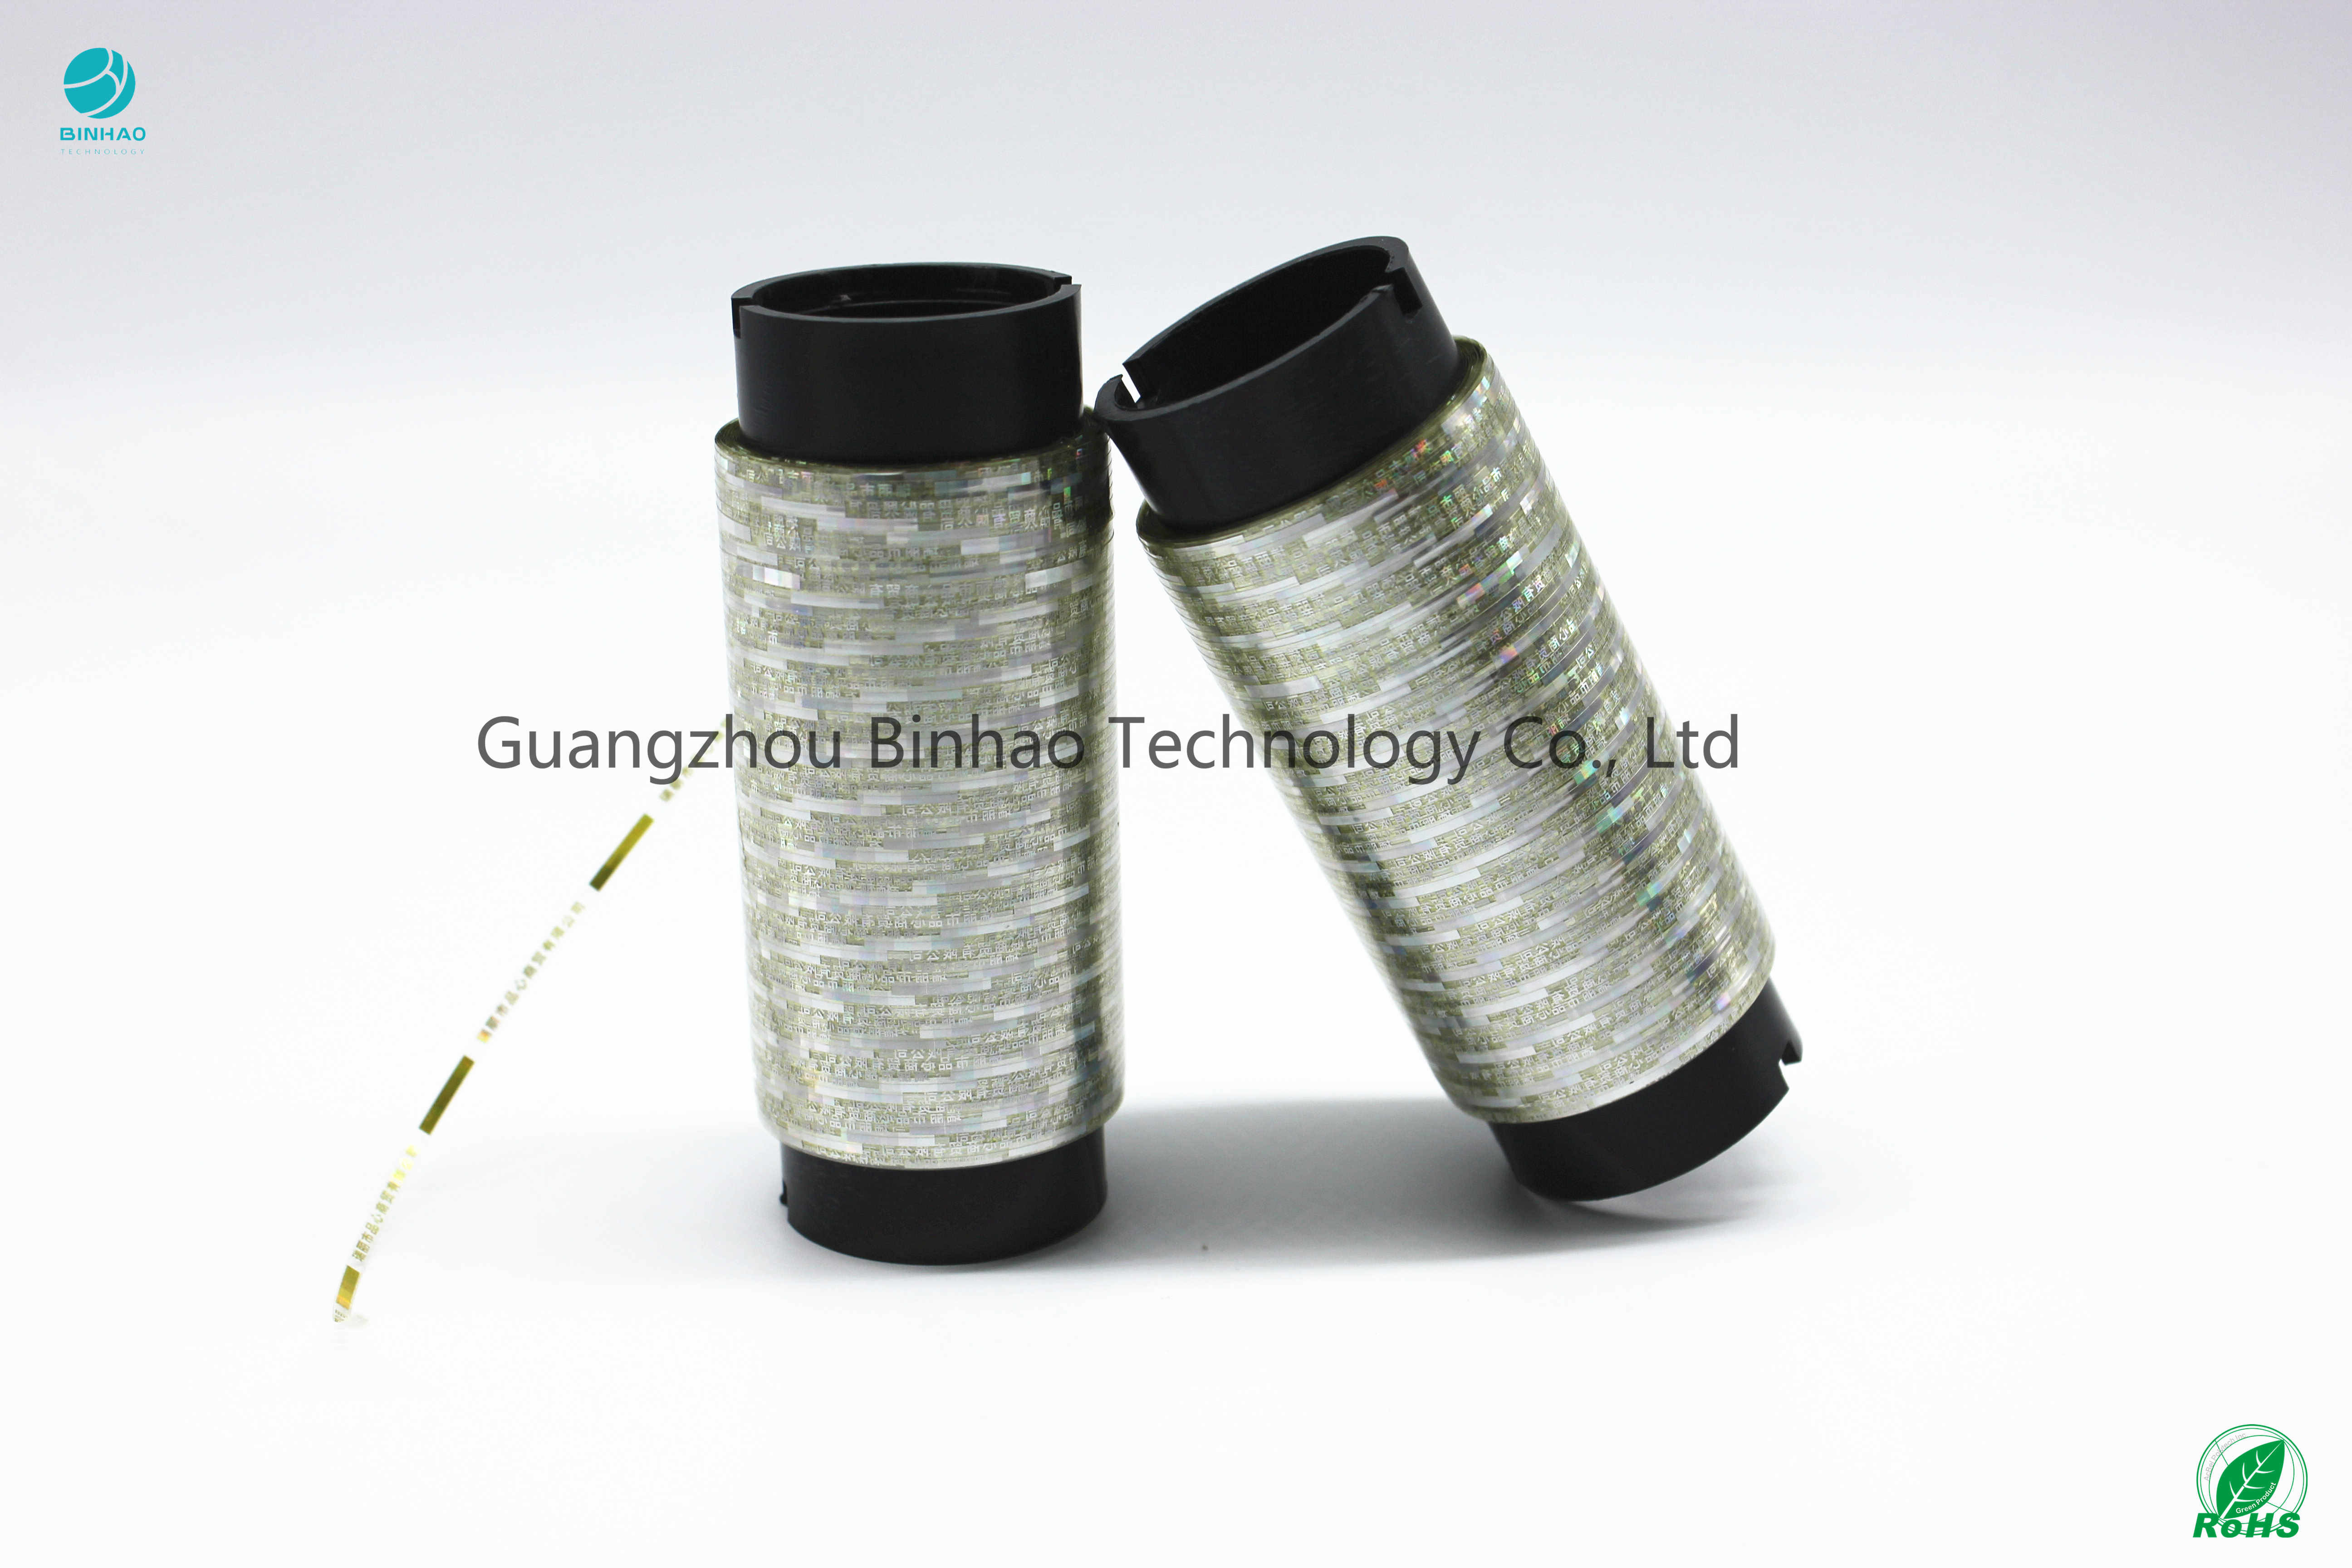 Adhesive Holographic Tearable Packing Tape Acrylic Eva Pp 3m One Sided Glue For Tobacco / Shisha